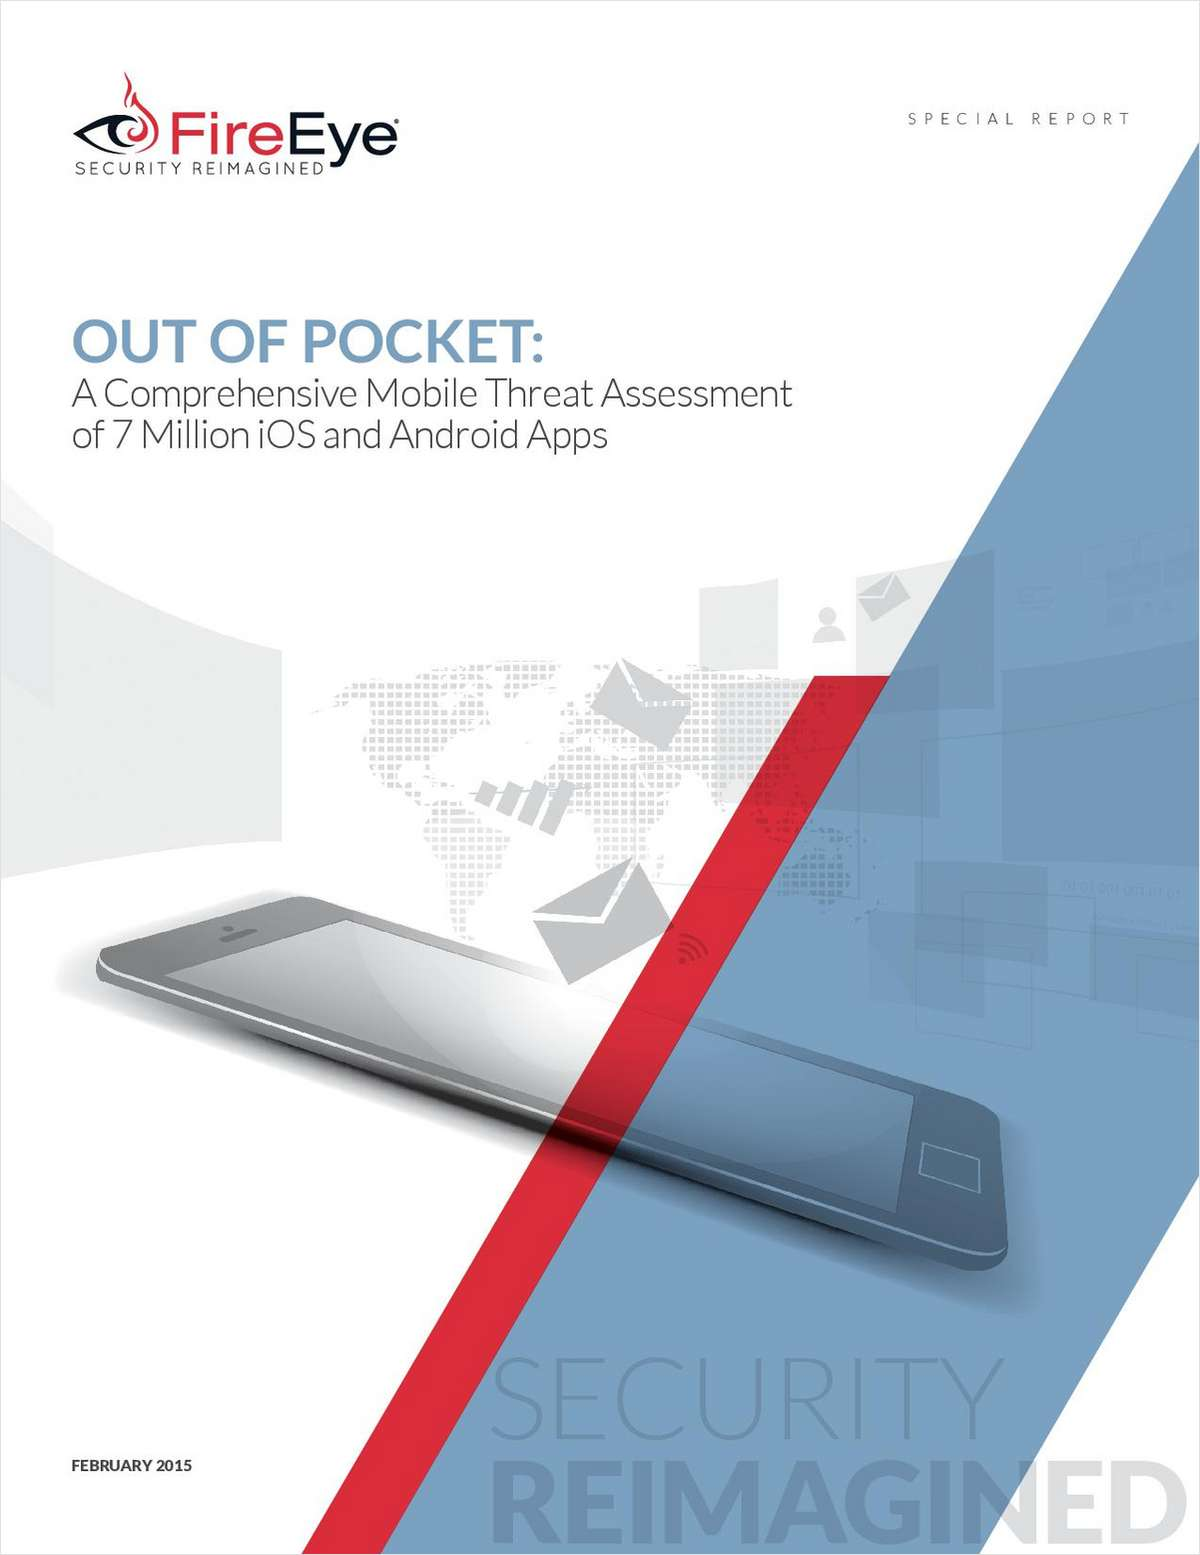 Out Of Pocket: A Comprehensive Mobile Threat Assessment